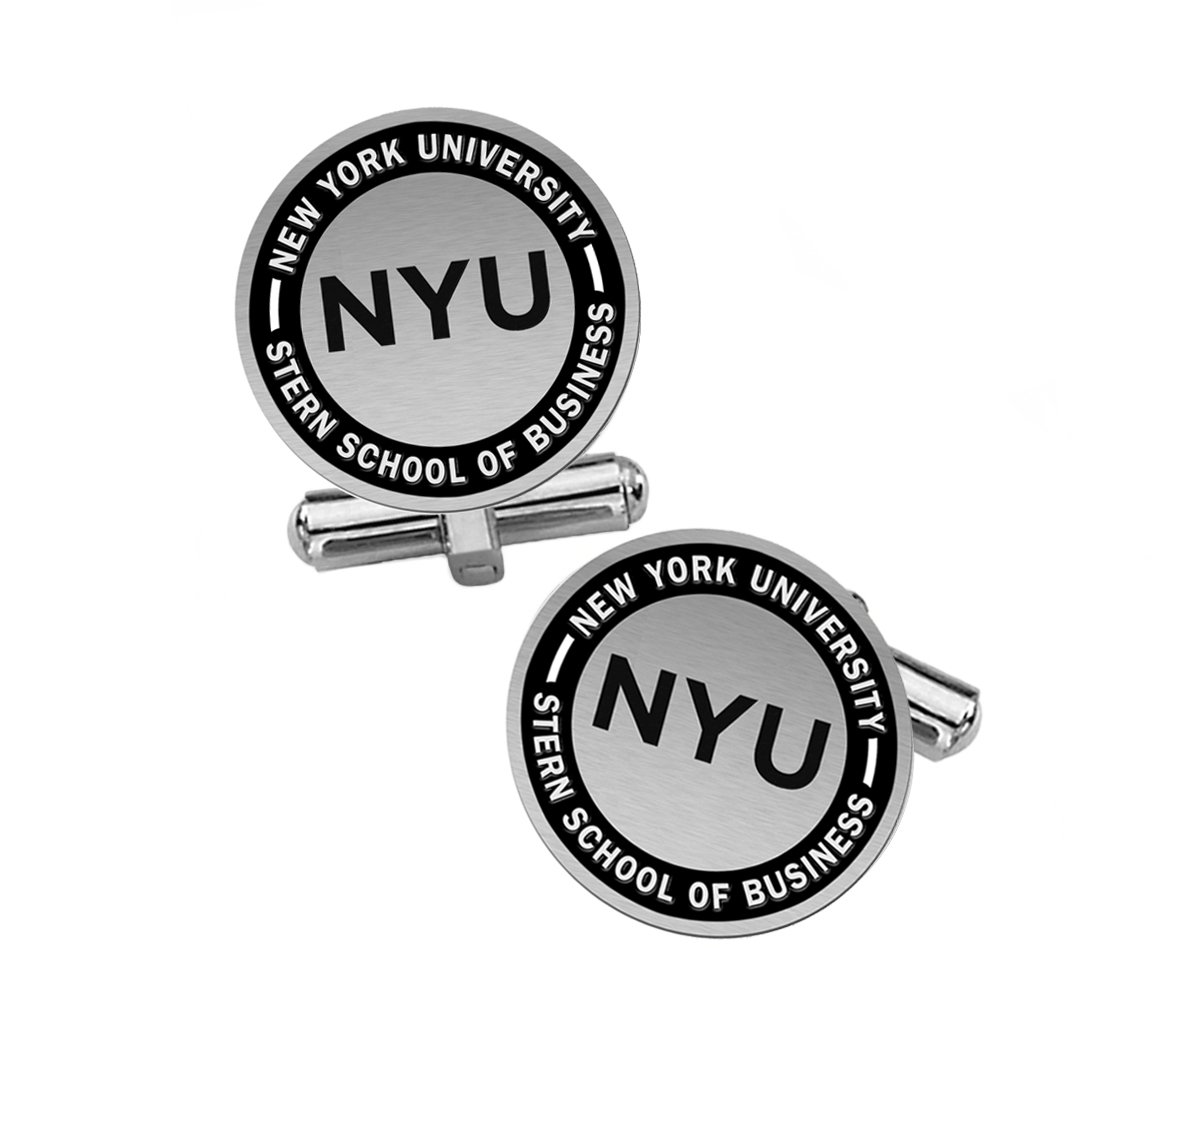 Stern School of Business Cuff Links | NYU by College Jewelry